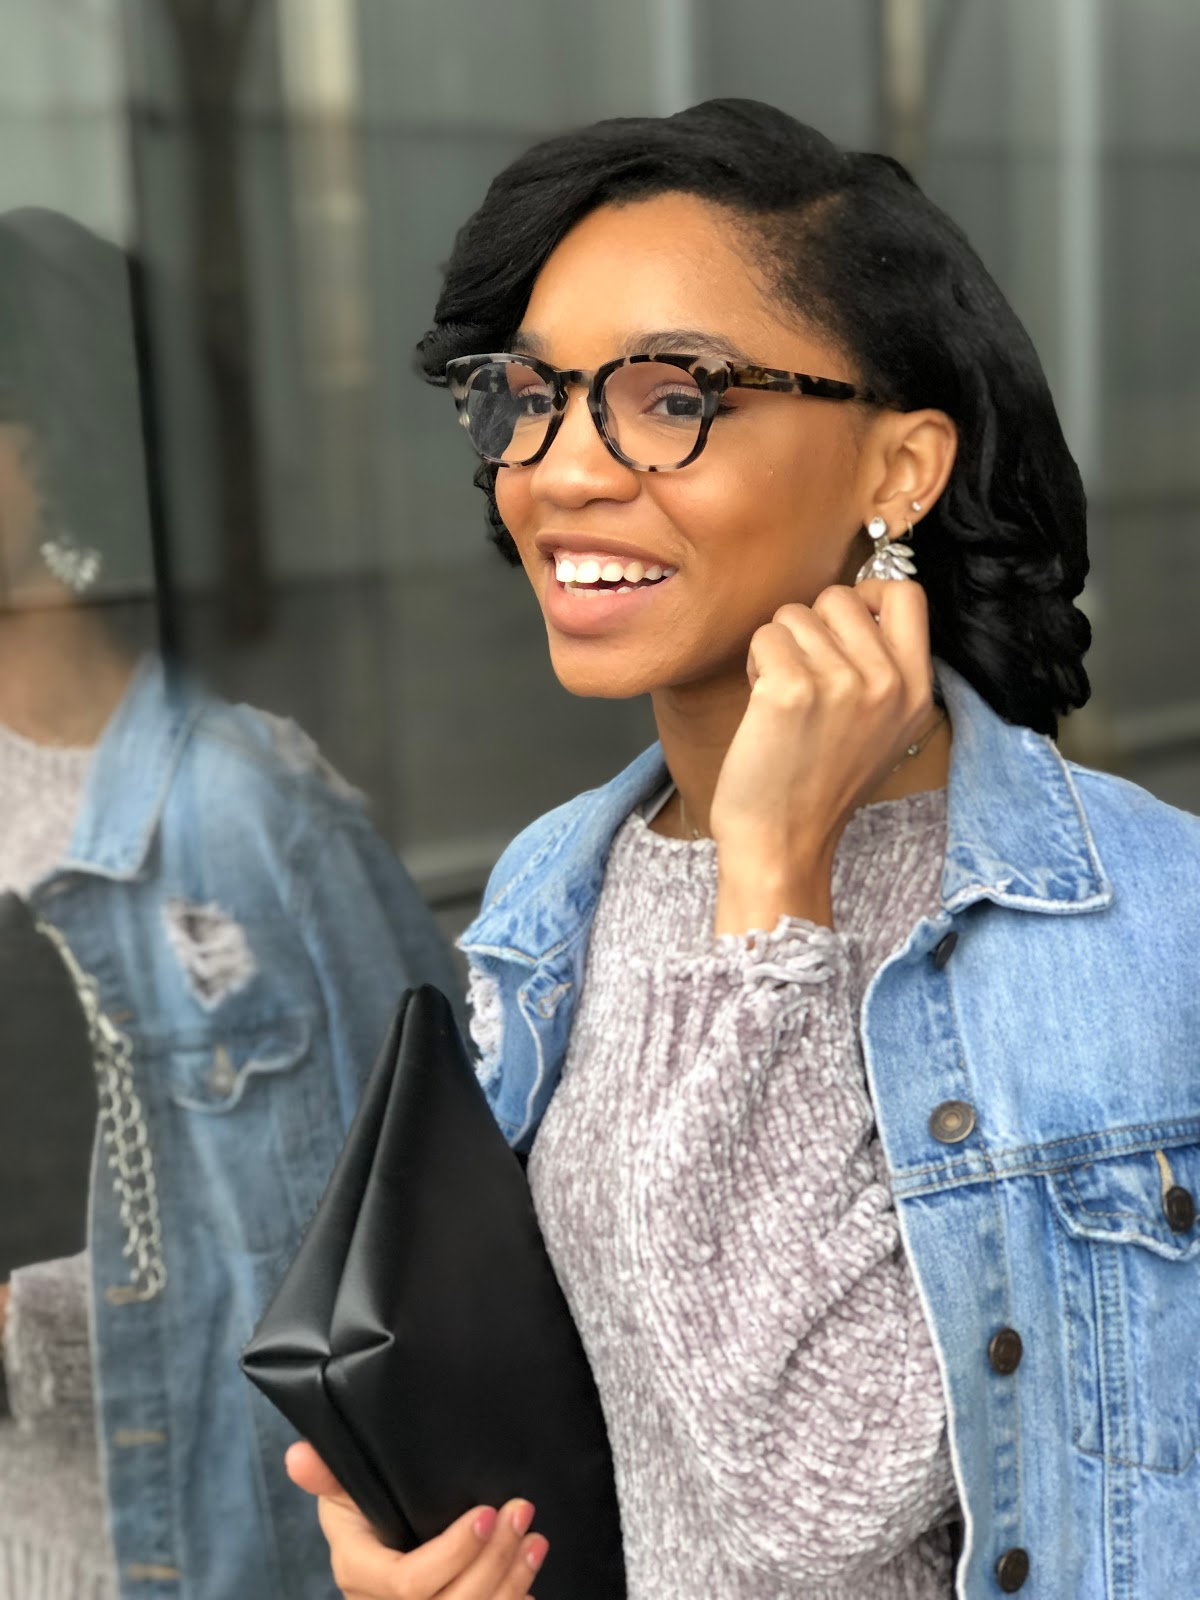 warby parker casper frames and moon and lola statement earrings smiling style blogger